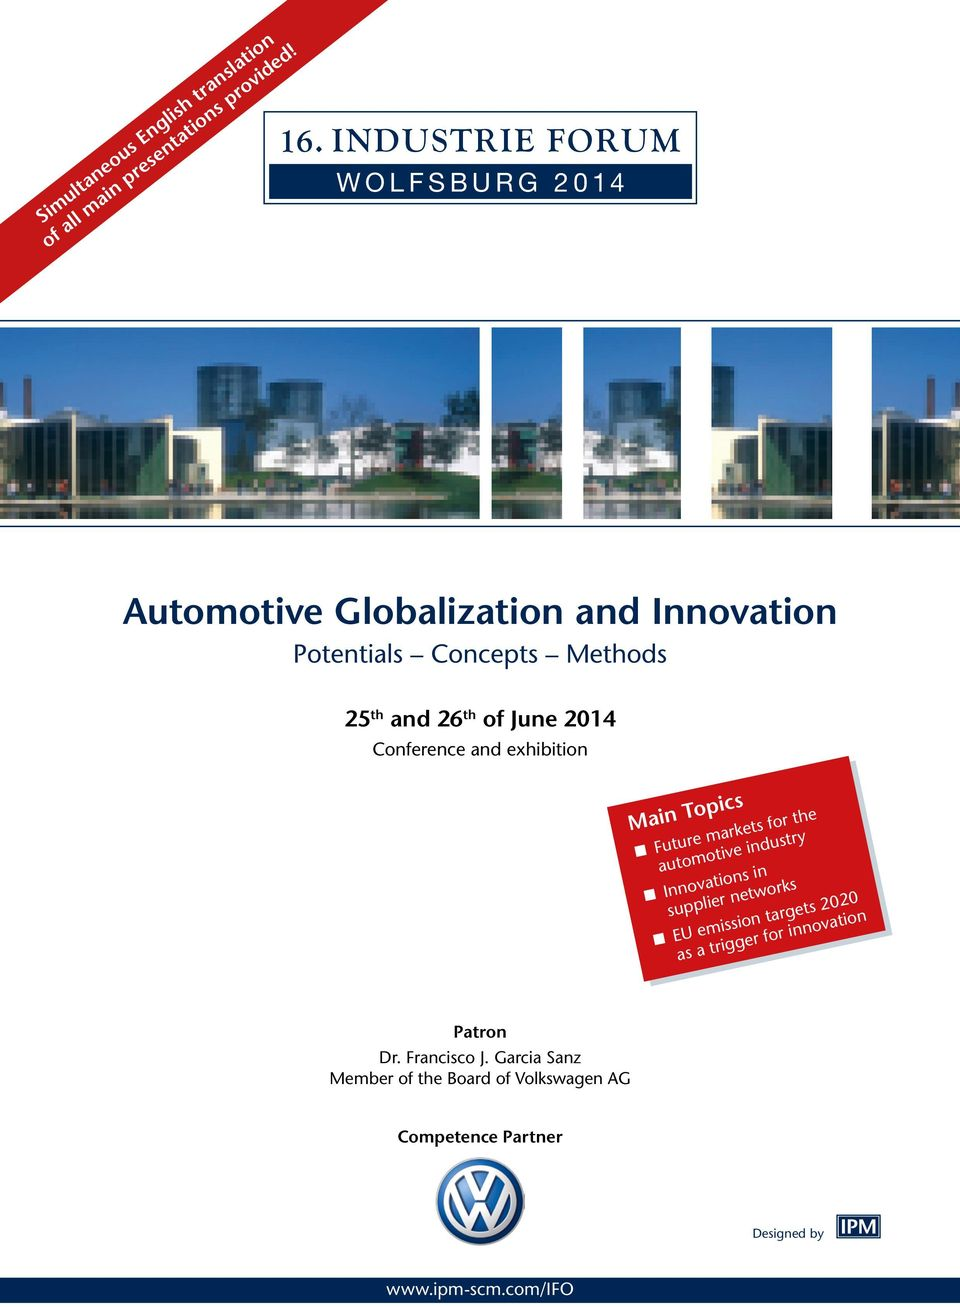 26 th of June 2014 Conference and exhibition Main Topics Future markets for the automotive industry Innovations in